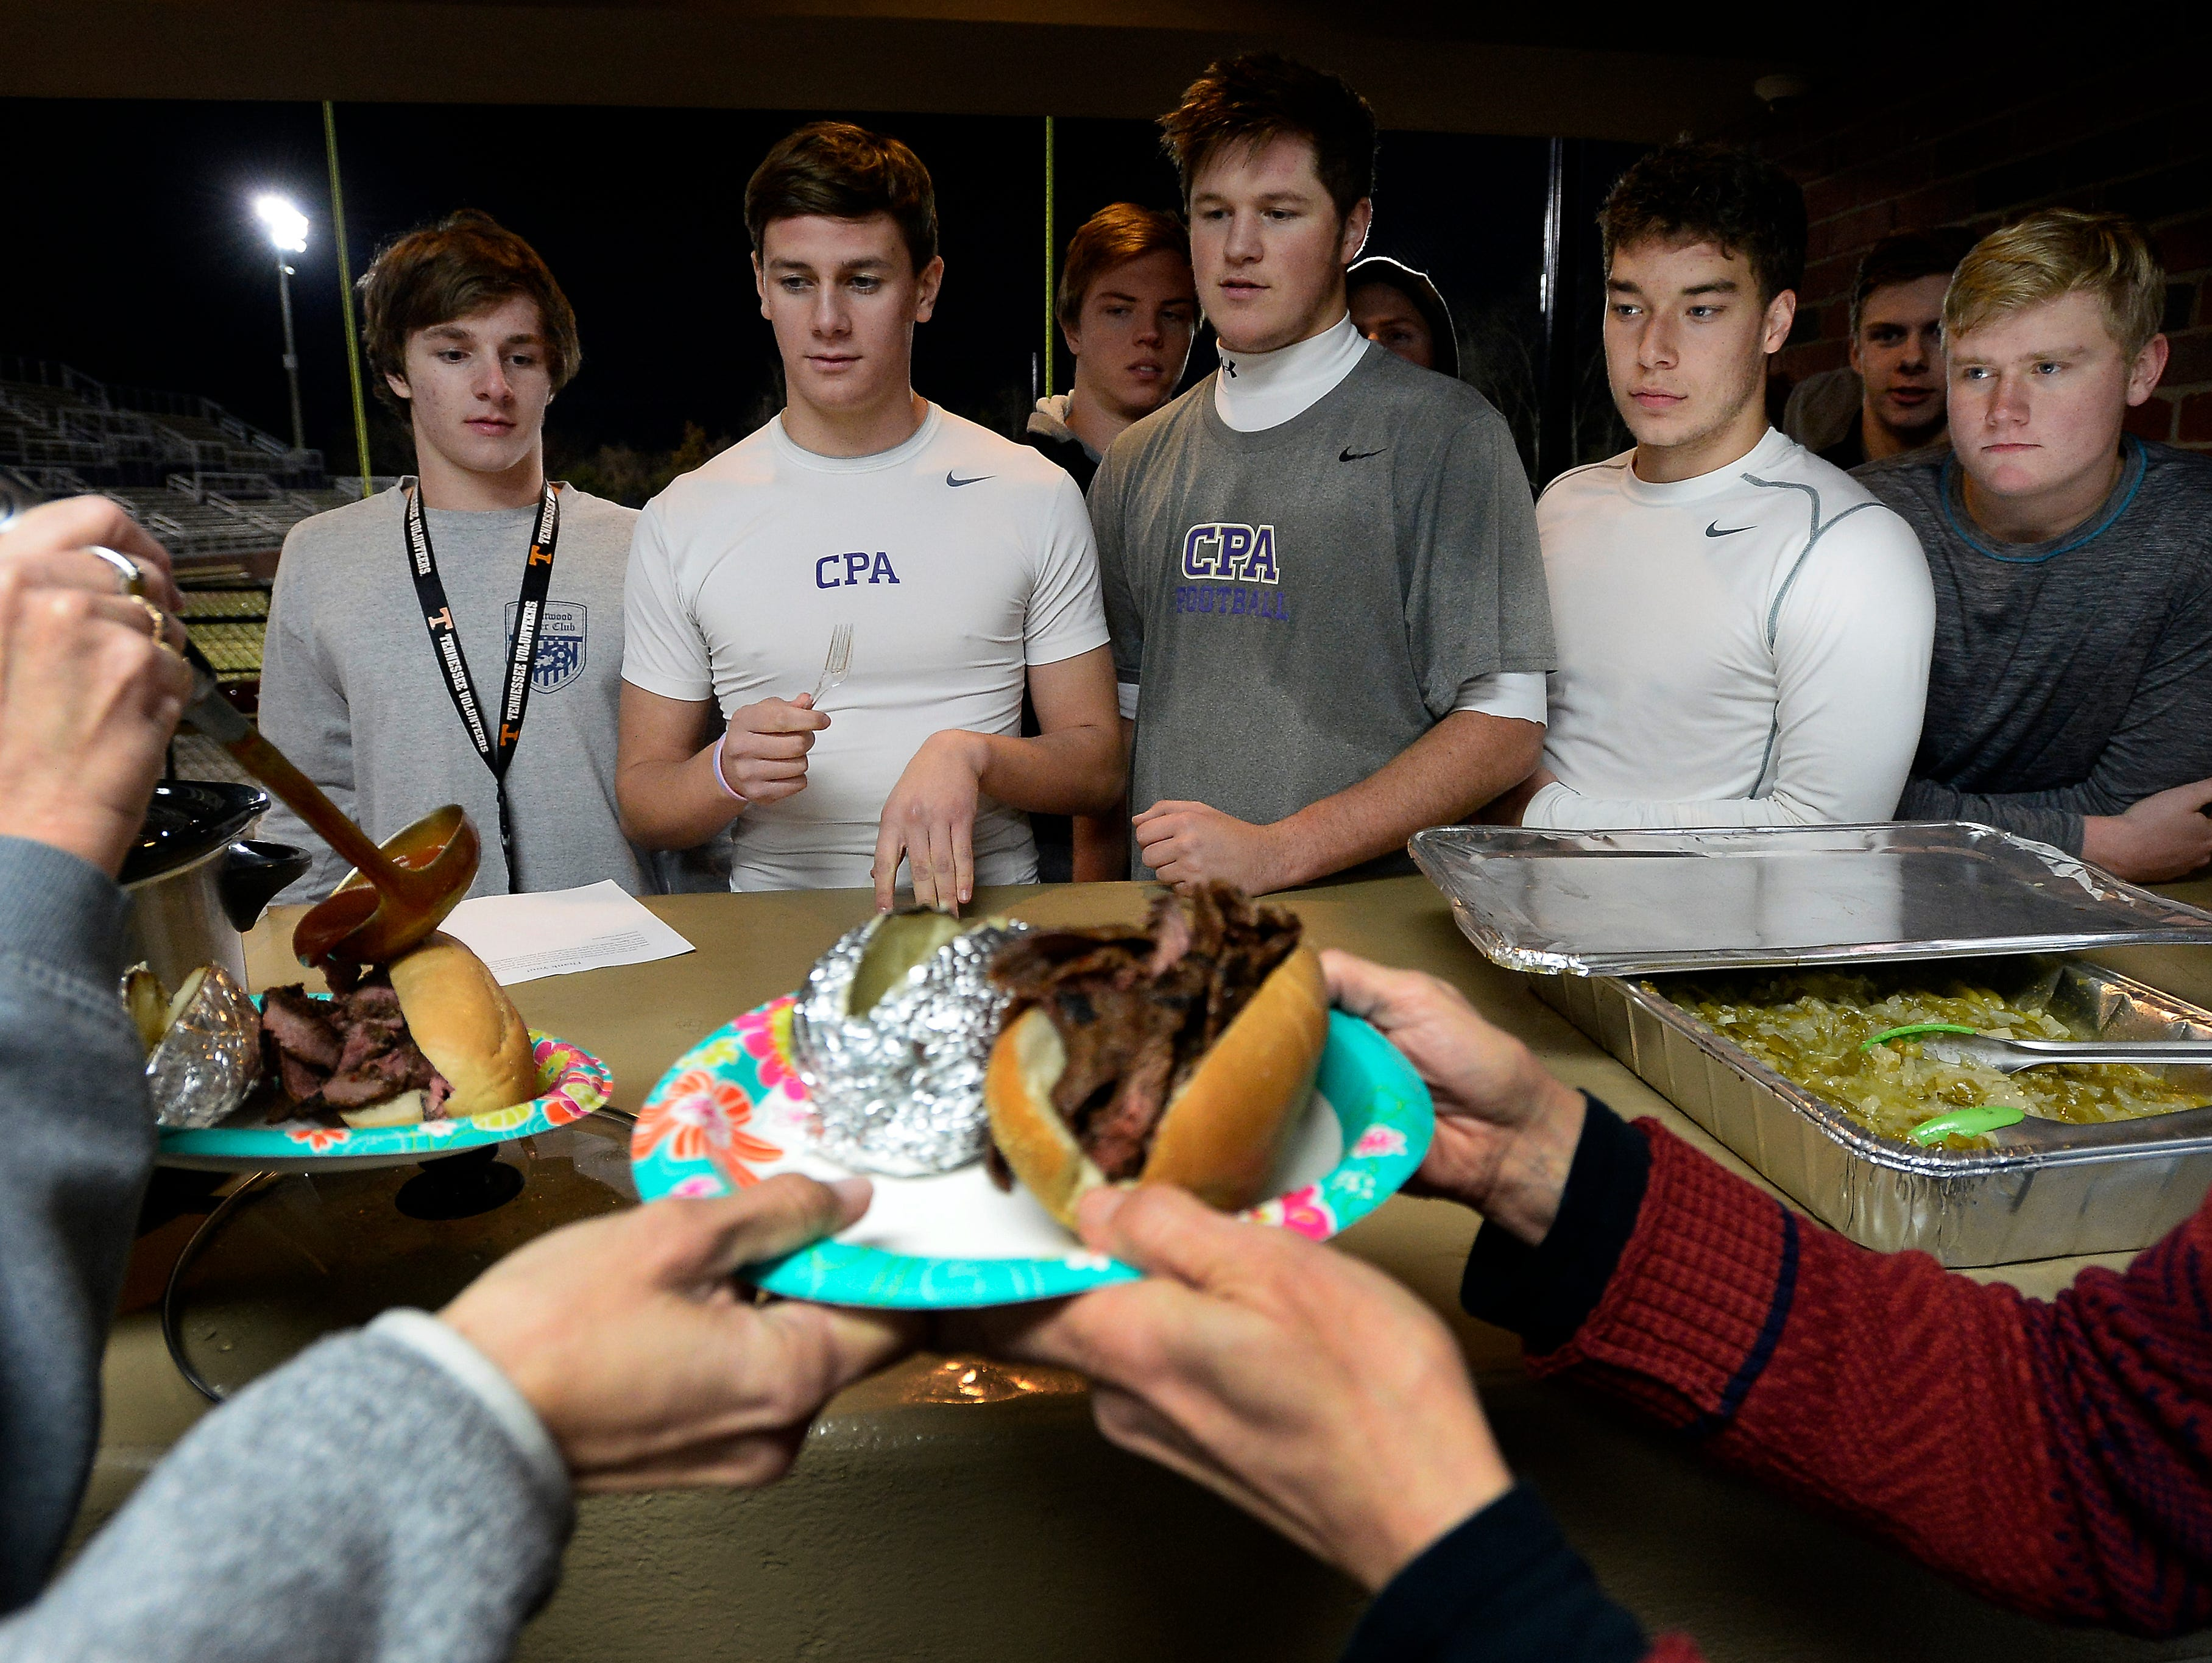 CPA football players are served an early Thanksgiving holiday team dinner after practice. The dinner, which included flank steak, salad, potatoes and homemade desert, was held after practice at Christ Presbyterian Academy on Tuesday, Nov. 24, 2015 in Nashville, Tenn.